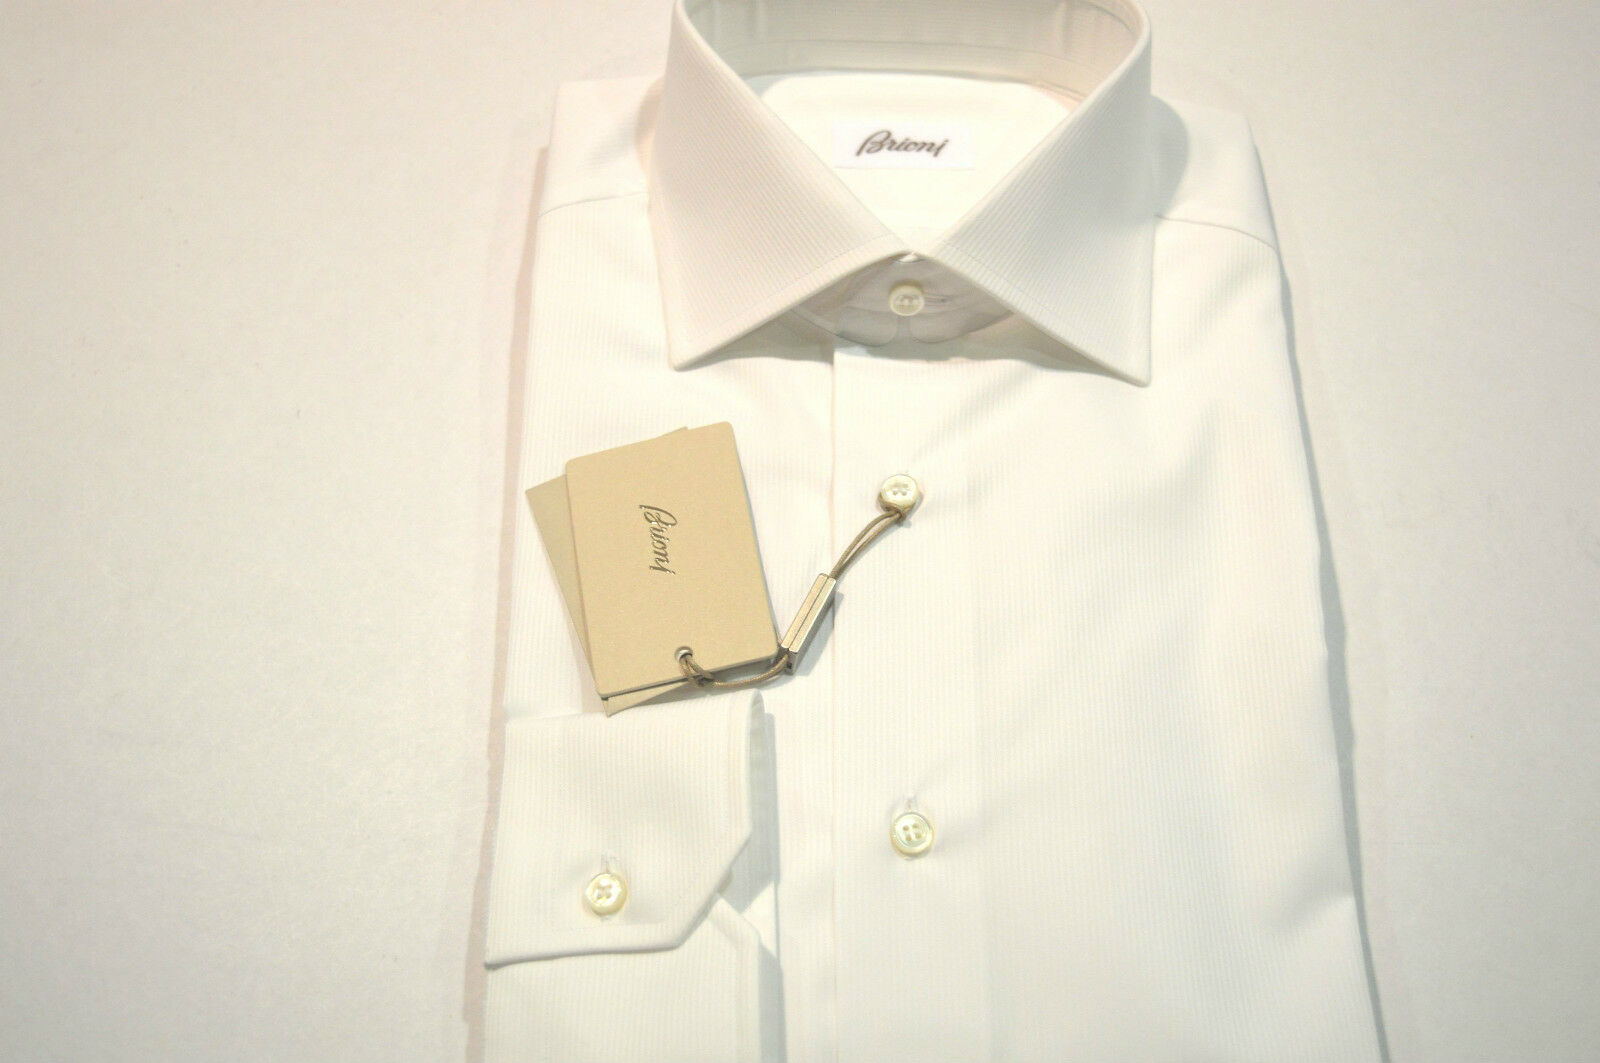 NEW  BRIONI Dress SHIRT 100% Cotton Size 15 Us 38 Eu White (Store Code SE3)